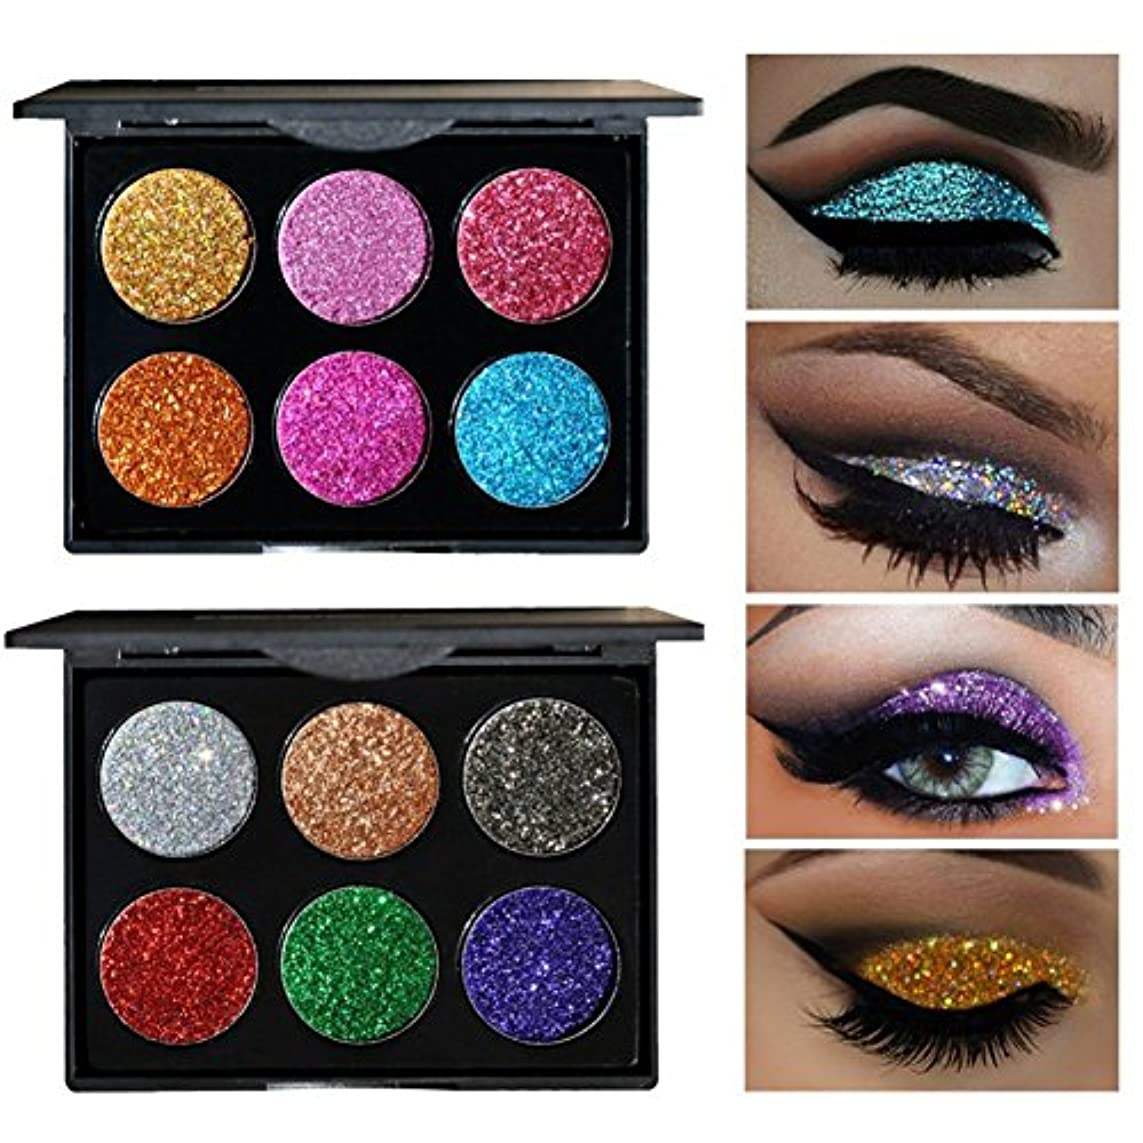 HANDAIYAN 6 Colors Glitter Eye Shadow Brighten Palette Flash Shimmer Natural Glitter Fix Gel Cosmetic Makeup Body...